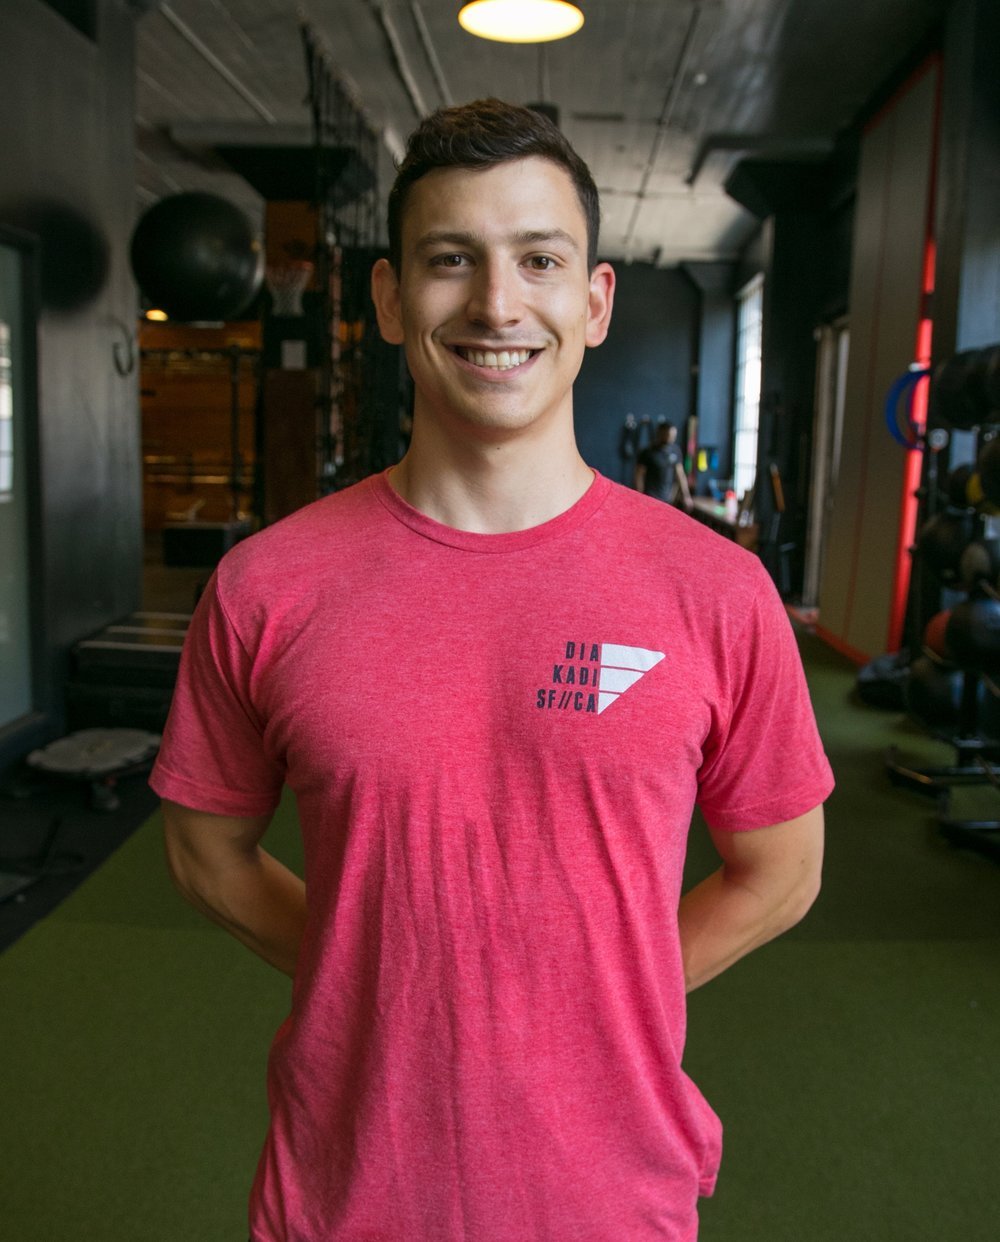 """RODRIGO FERNANDEZ    CLICK FOR BIO    """"To me movement and health are about possibilities, exploring new and better ways of facing life's challenges and building resilience for a better life."""""""